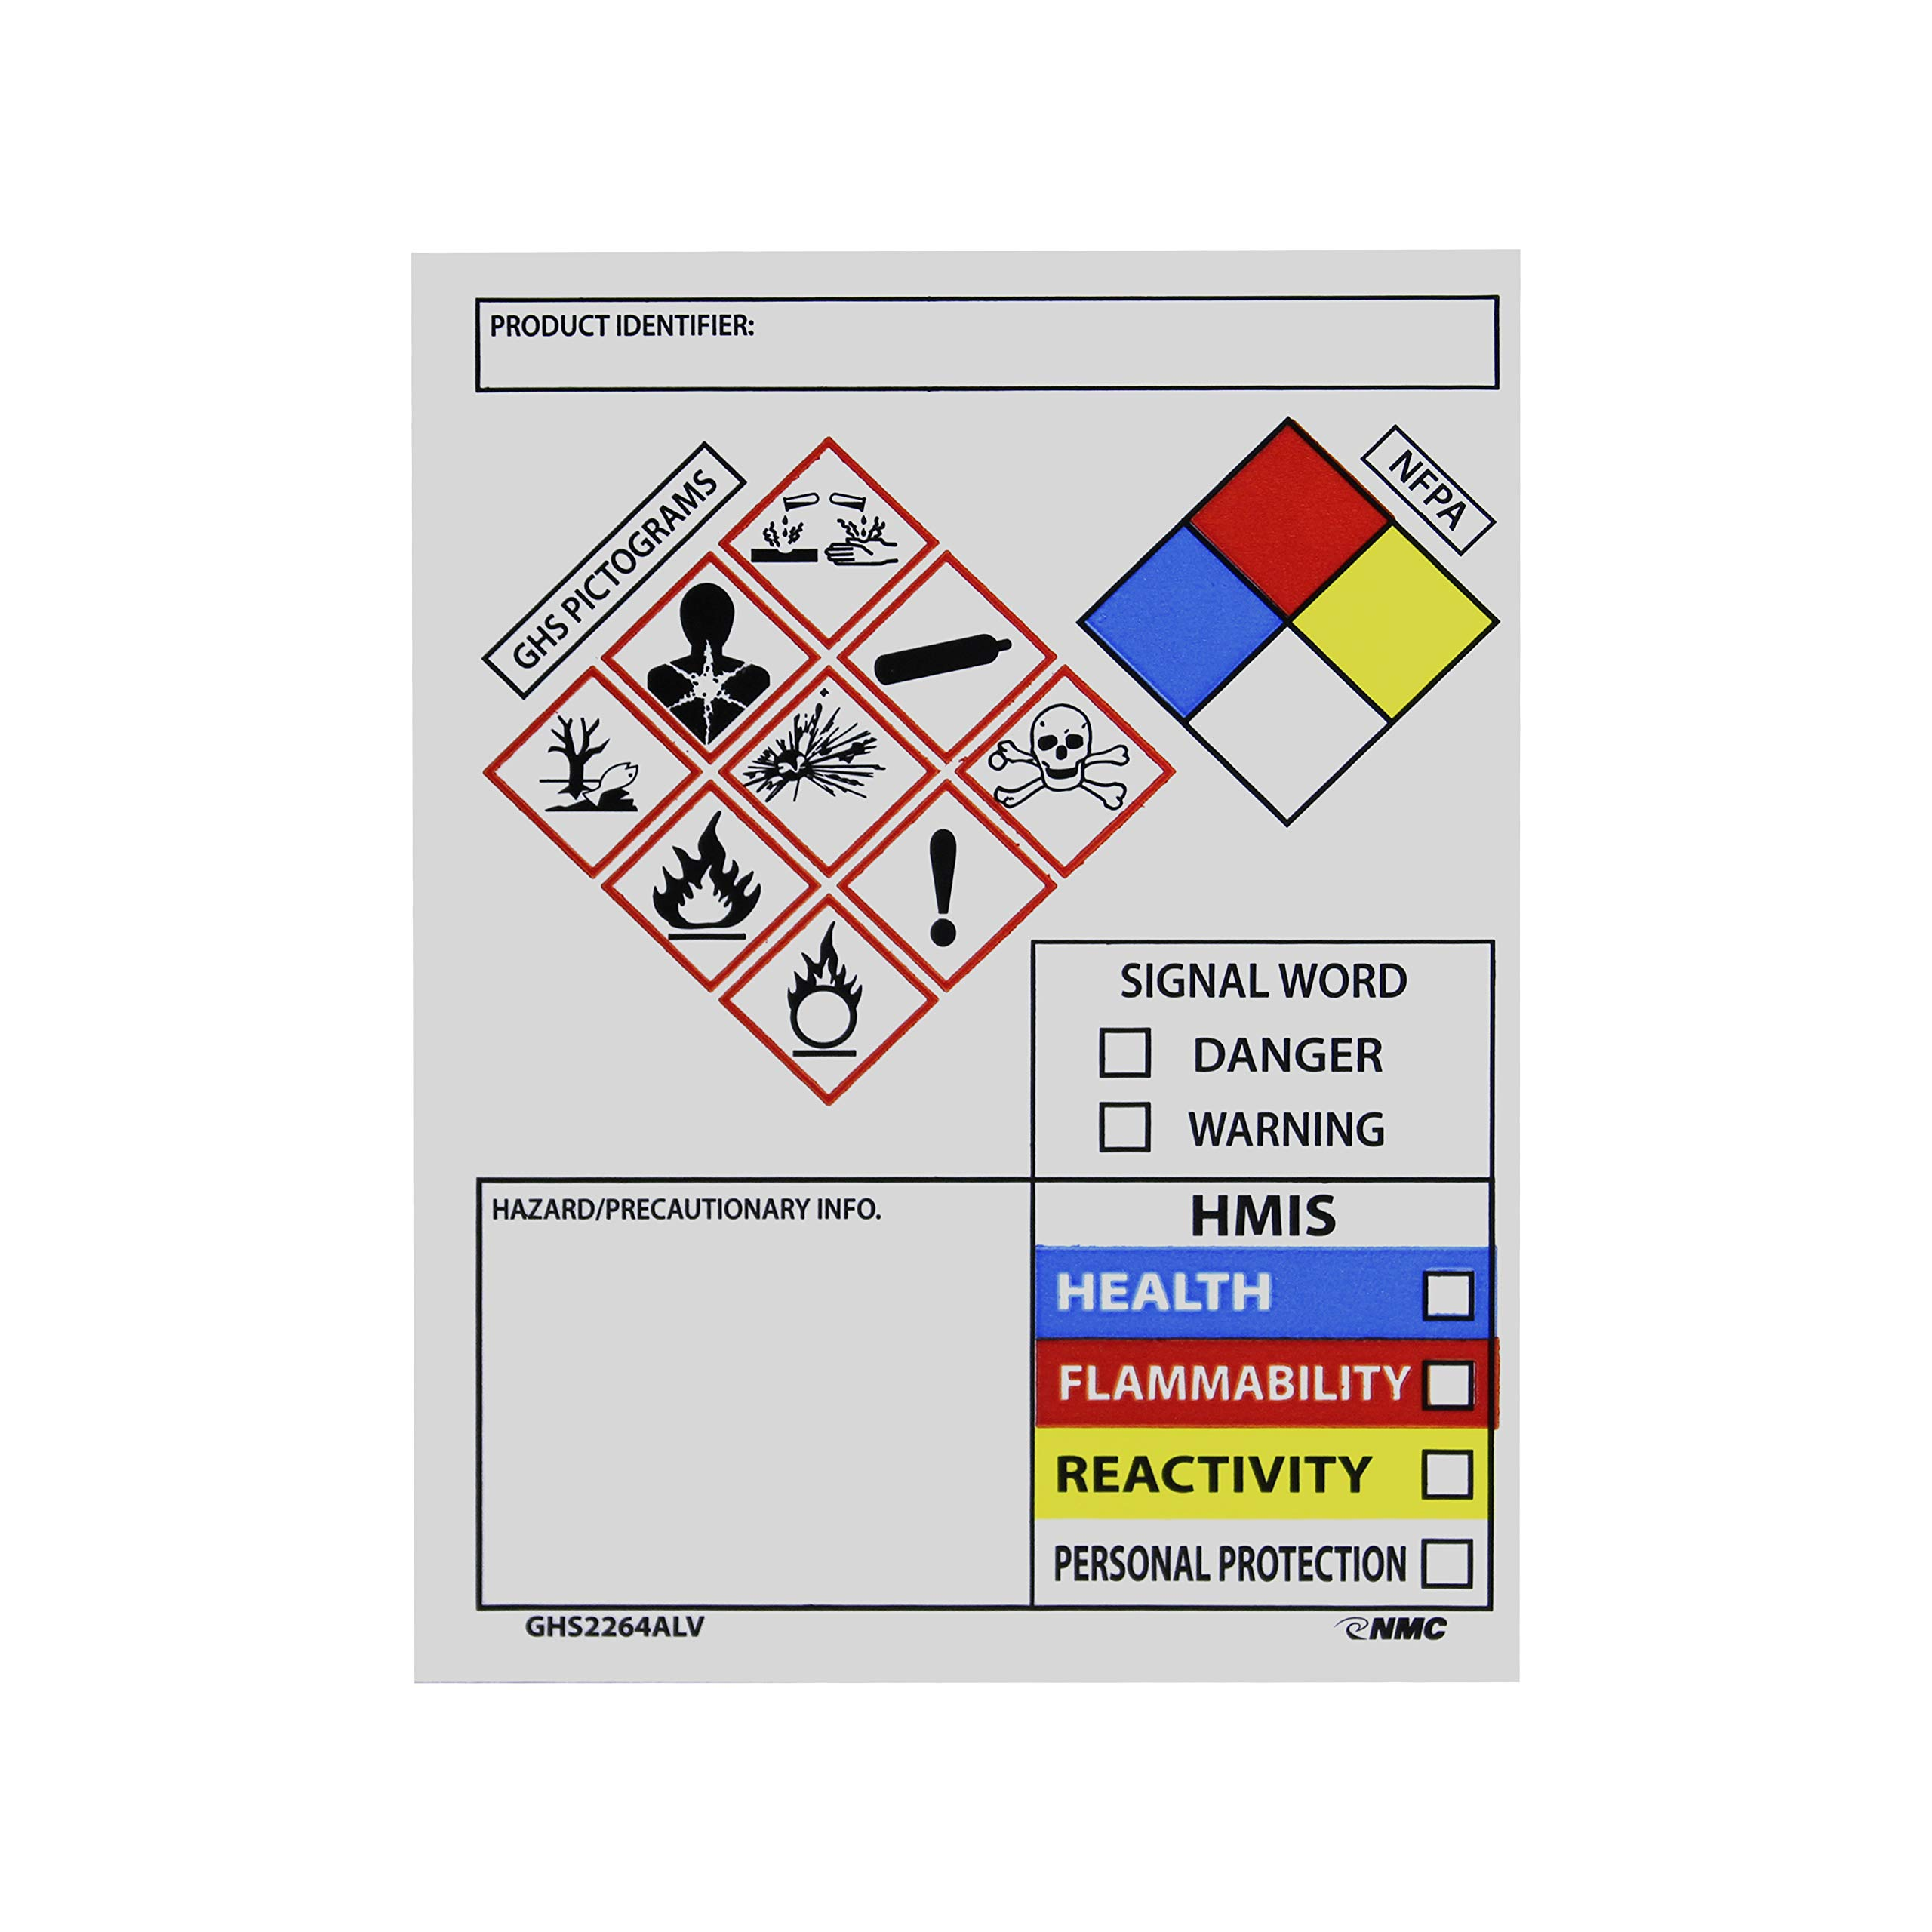 Nmc Ghs2264Alv Secondary Container Labels, Œproduct Identifier:, Hazard/Precautionary Info, Single Word, Hmis, 4 x 3, Adhesive Vinyl, Blue/Black/Red/Yellow On White (Pack Of 250) by National Marker